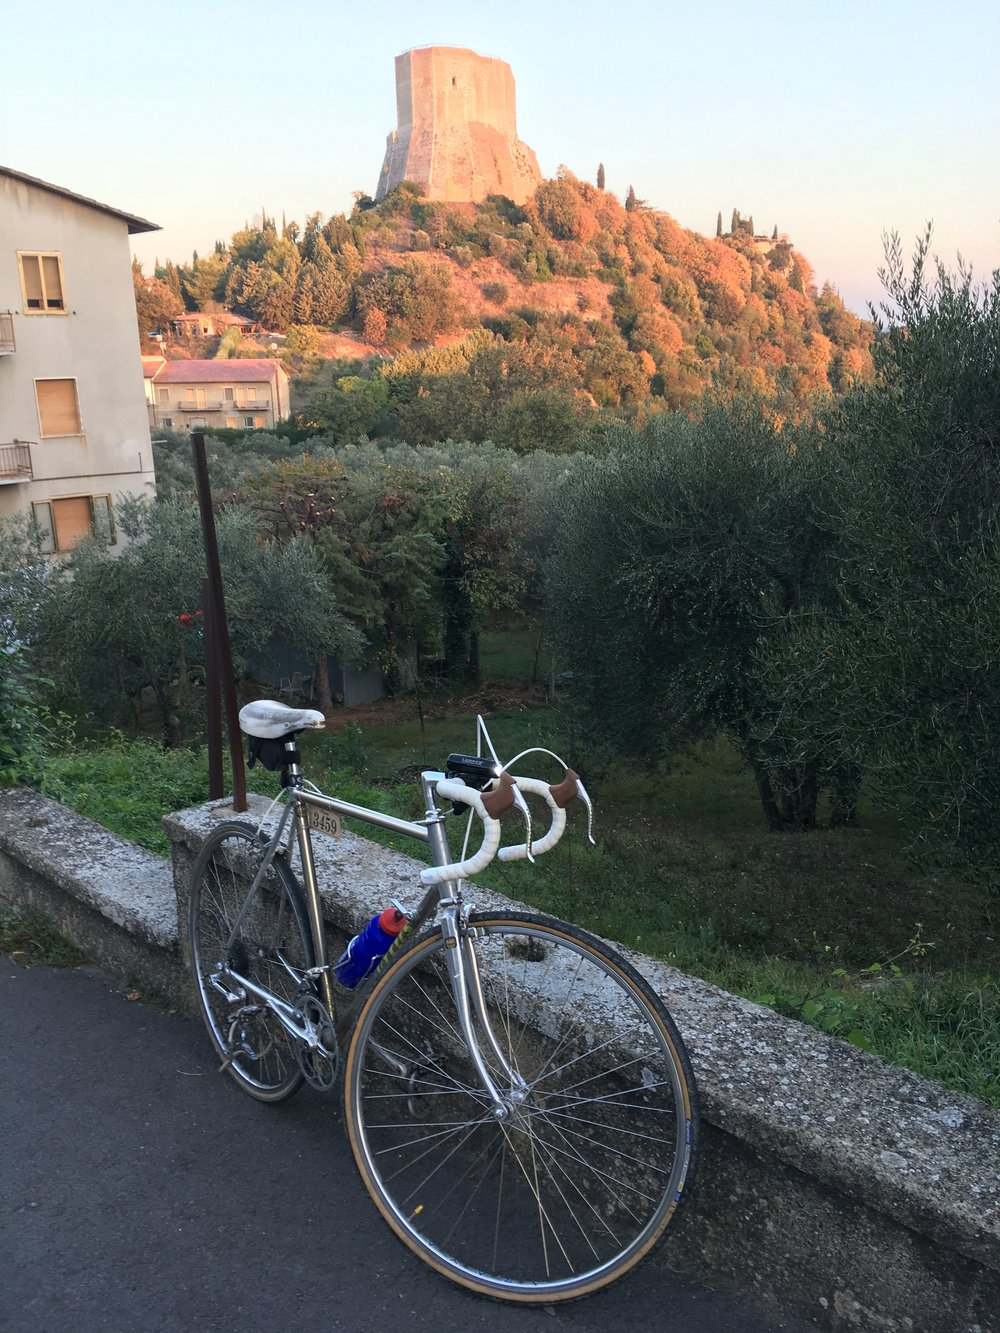 Early morning cycle climb up 340m to the high Rocca di Tentennano